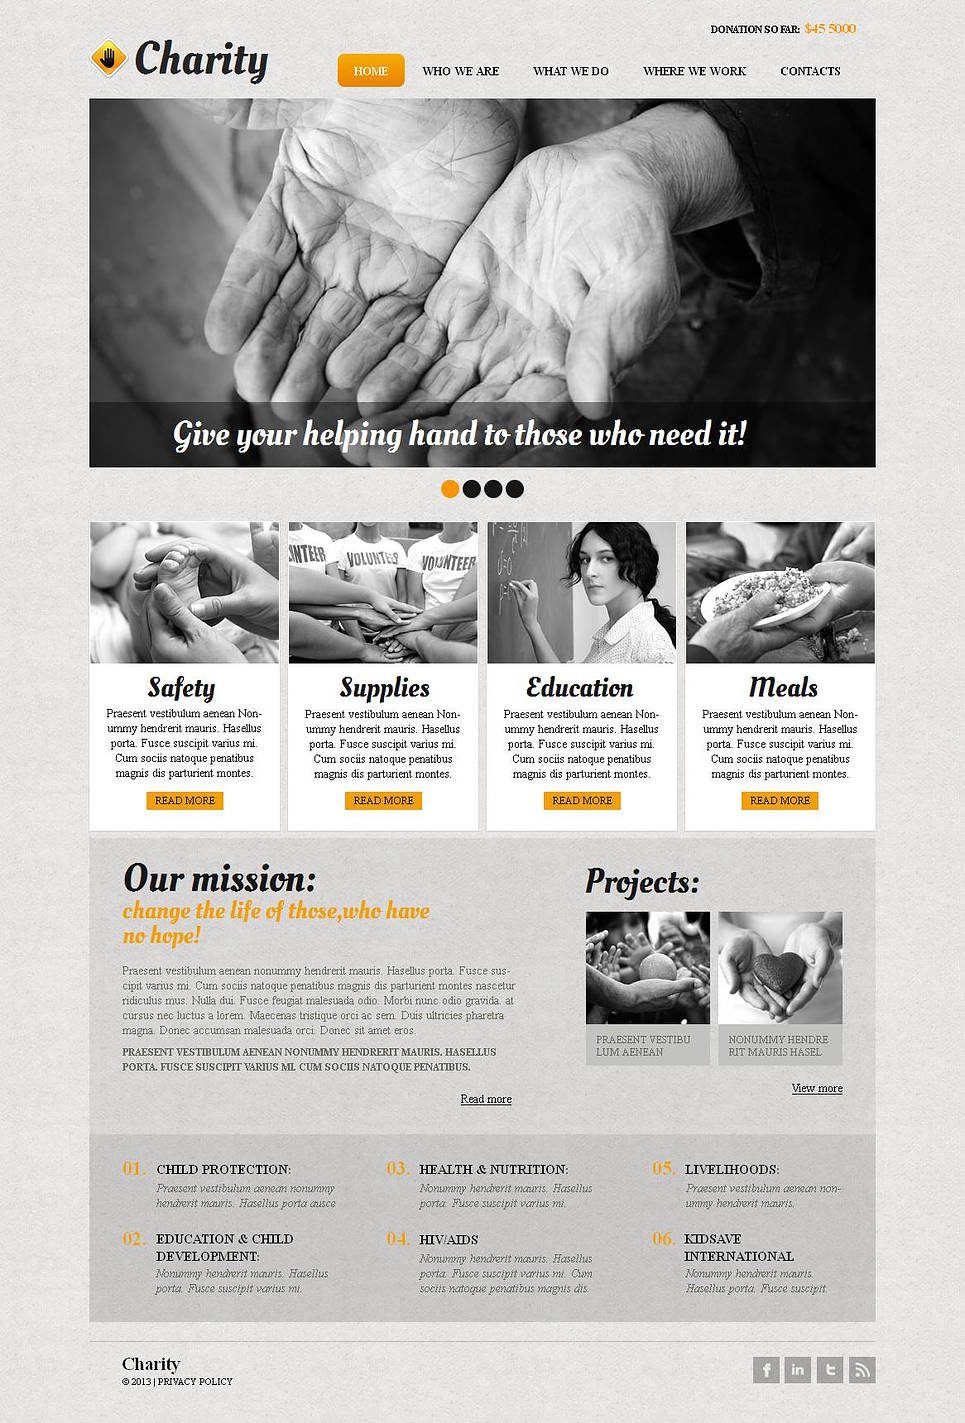 Newspaper Style Website Template for Charitable Organizations - image